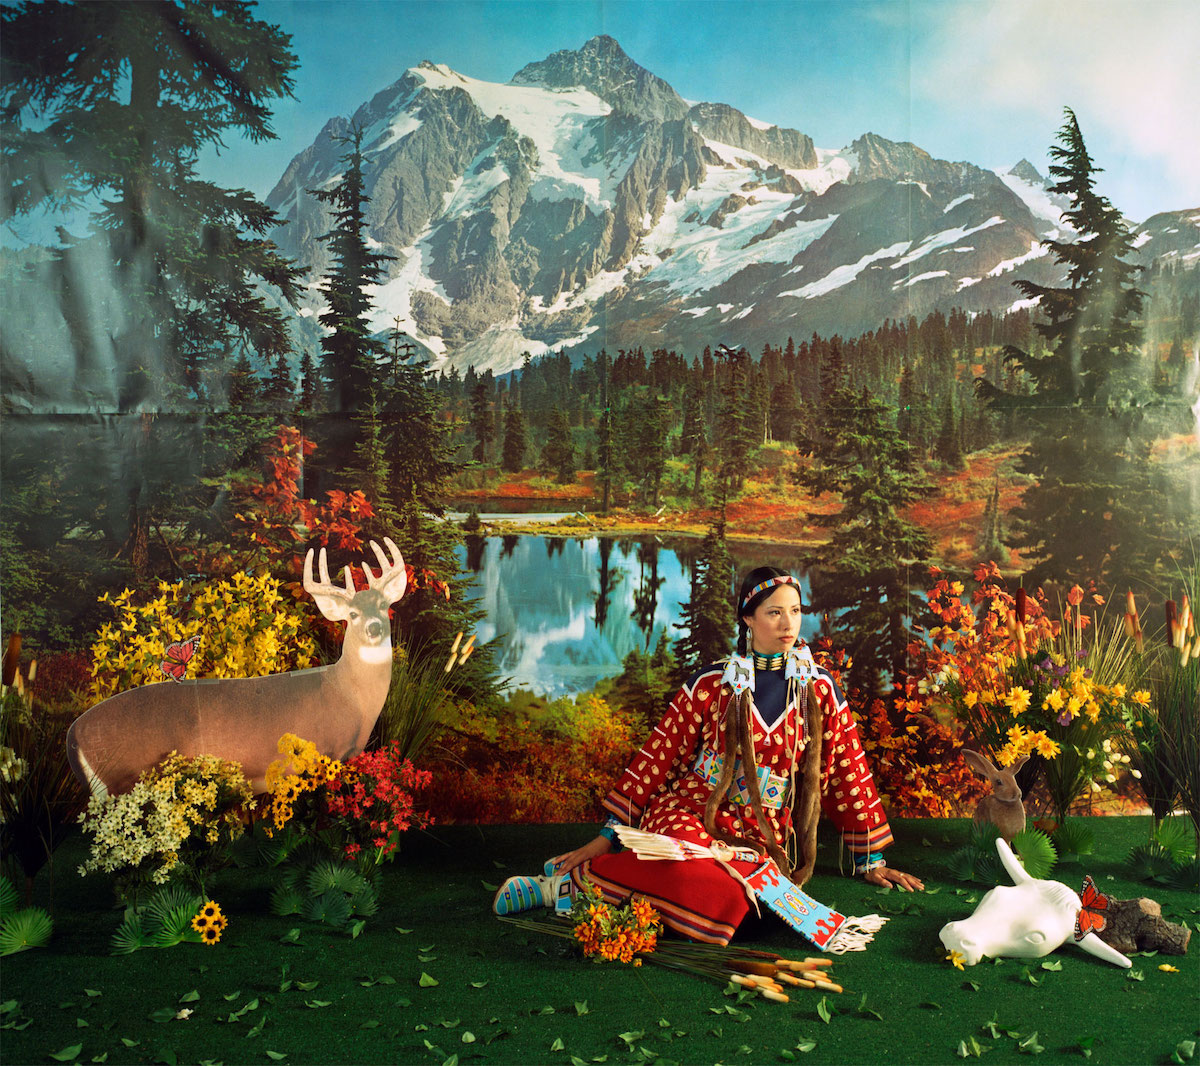 a woman sitting on the ground with the backdrop of a mountain range, a lake and animals